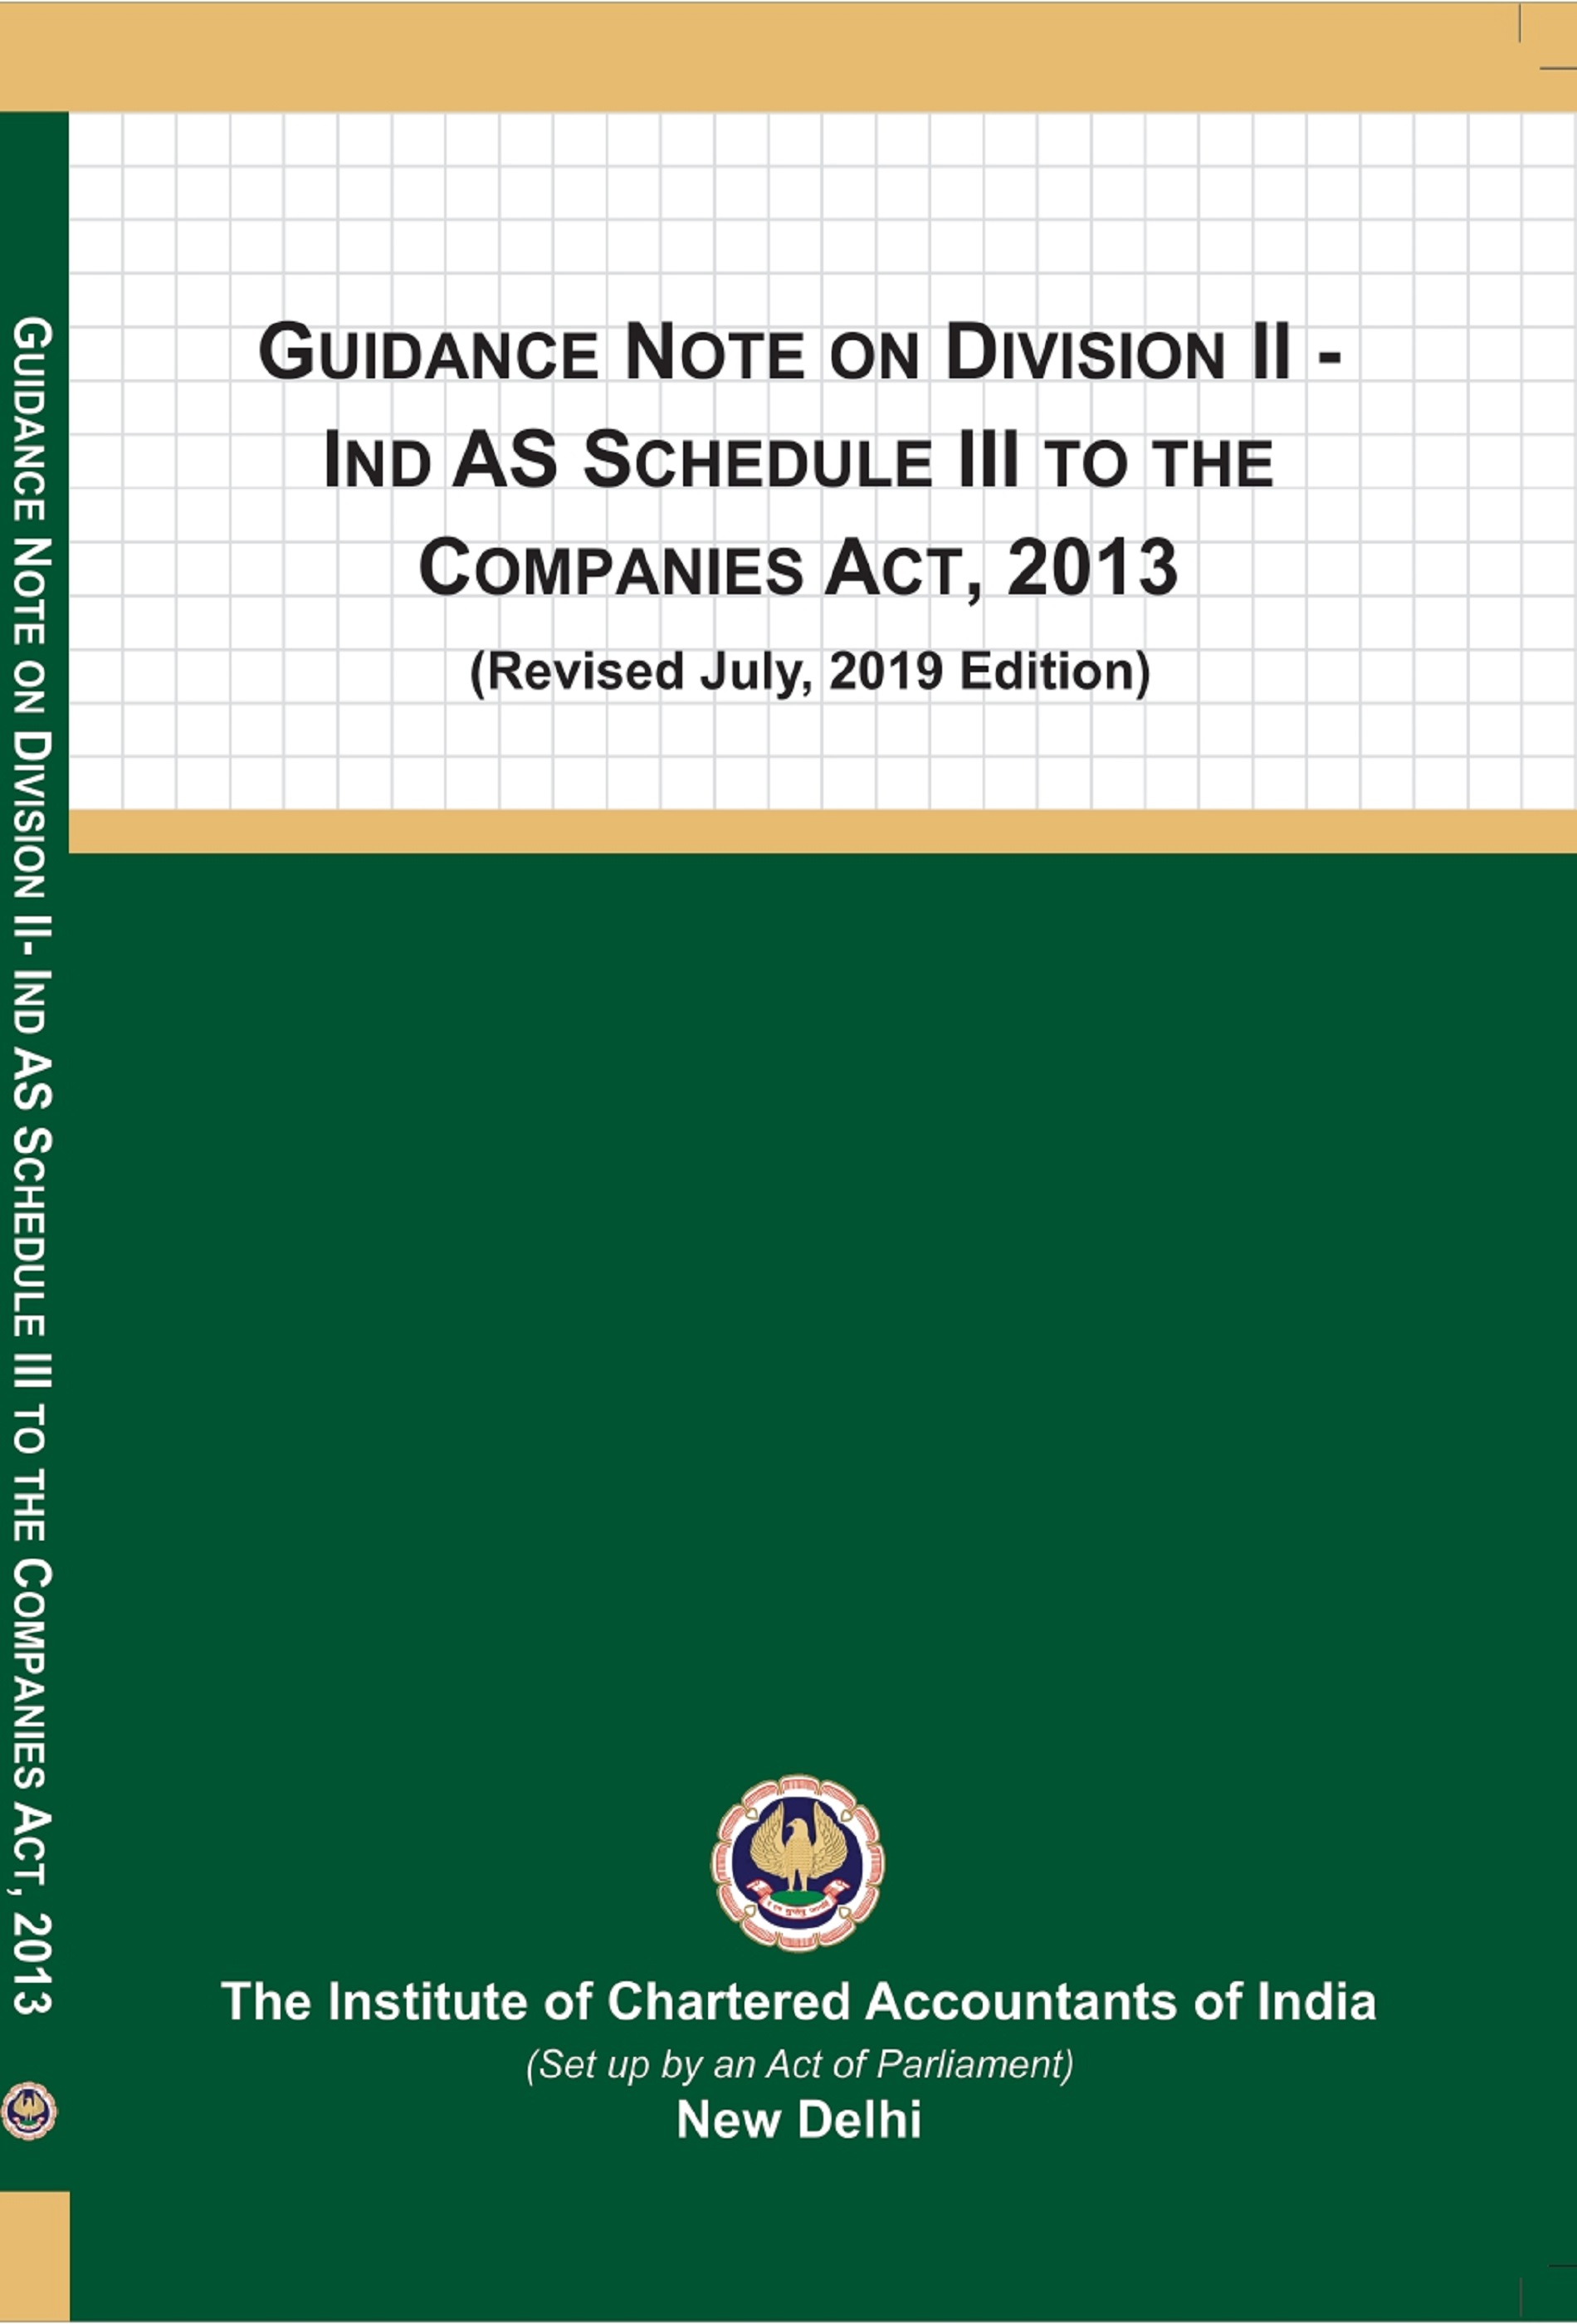 Guidance Note on Division II - Ind AS Schedule III to The Companies Act, 2013 (Revised July, 2019 Edition)